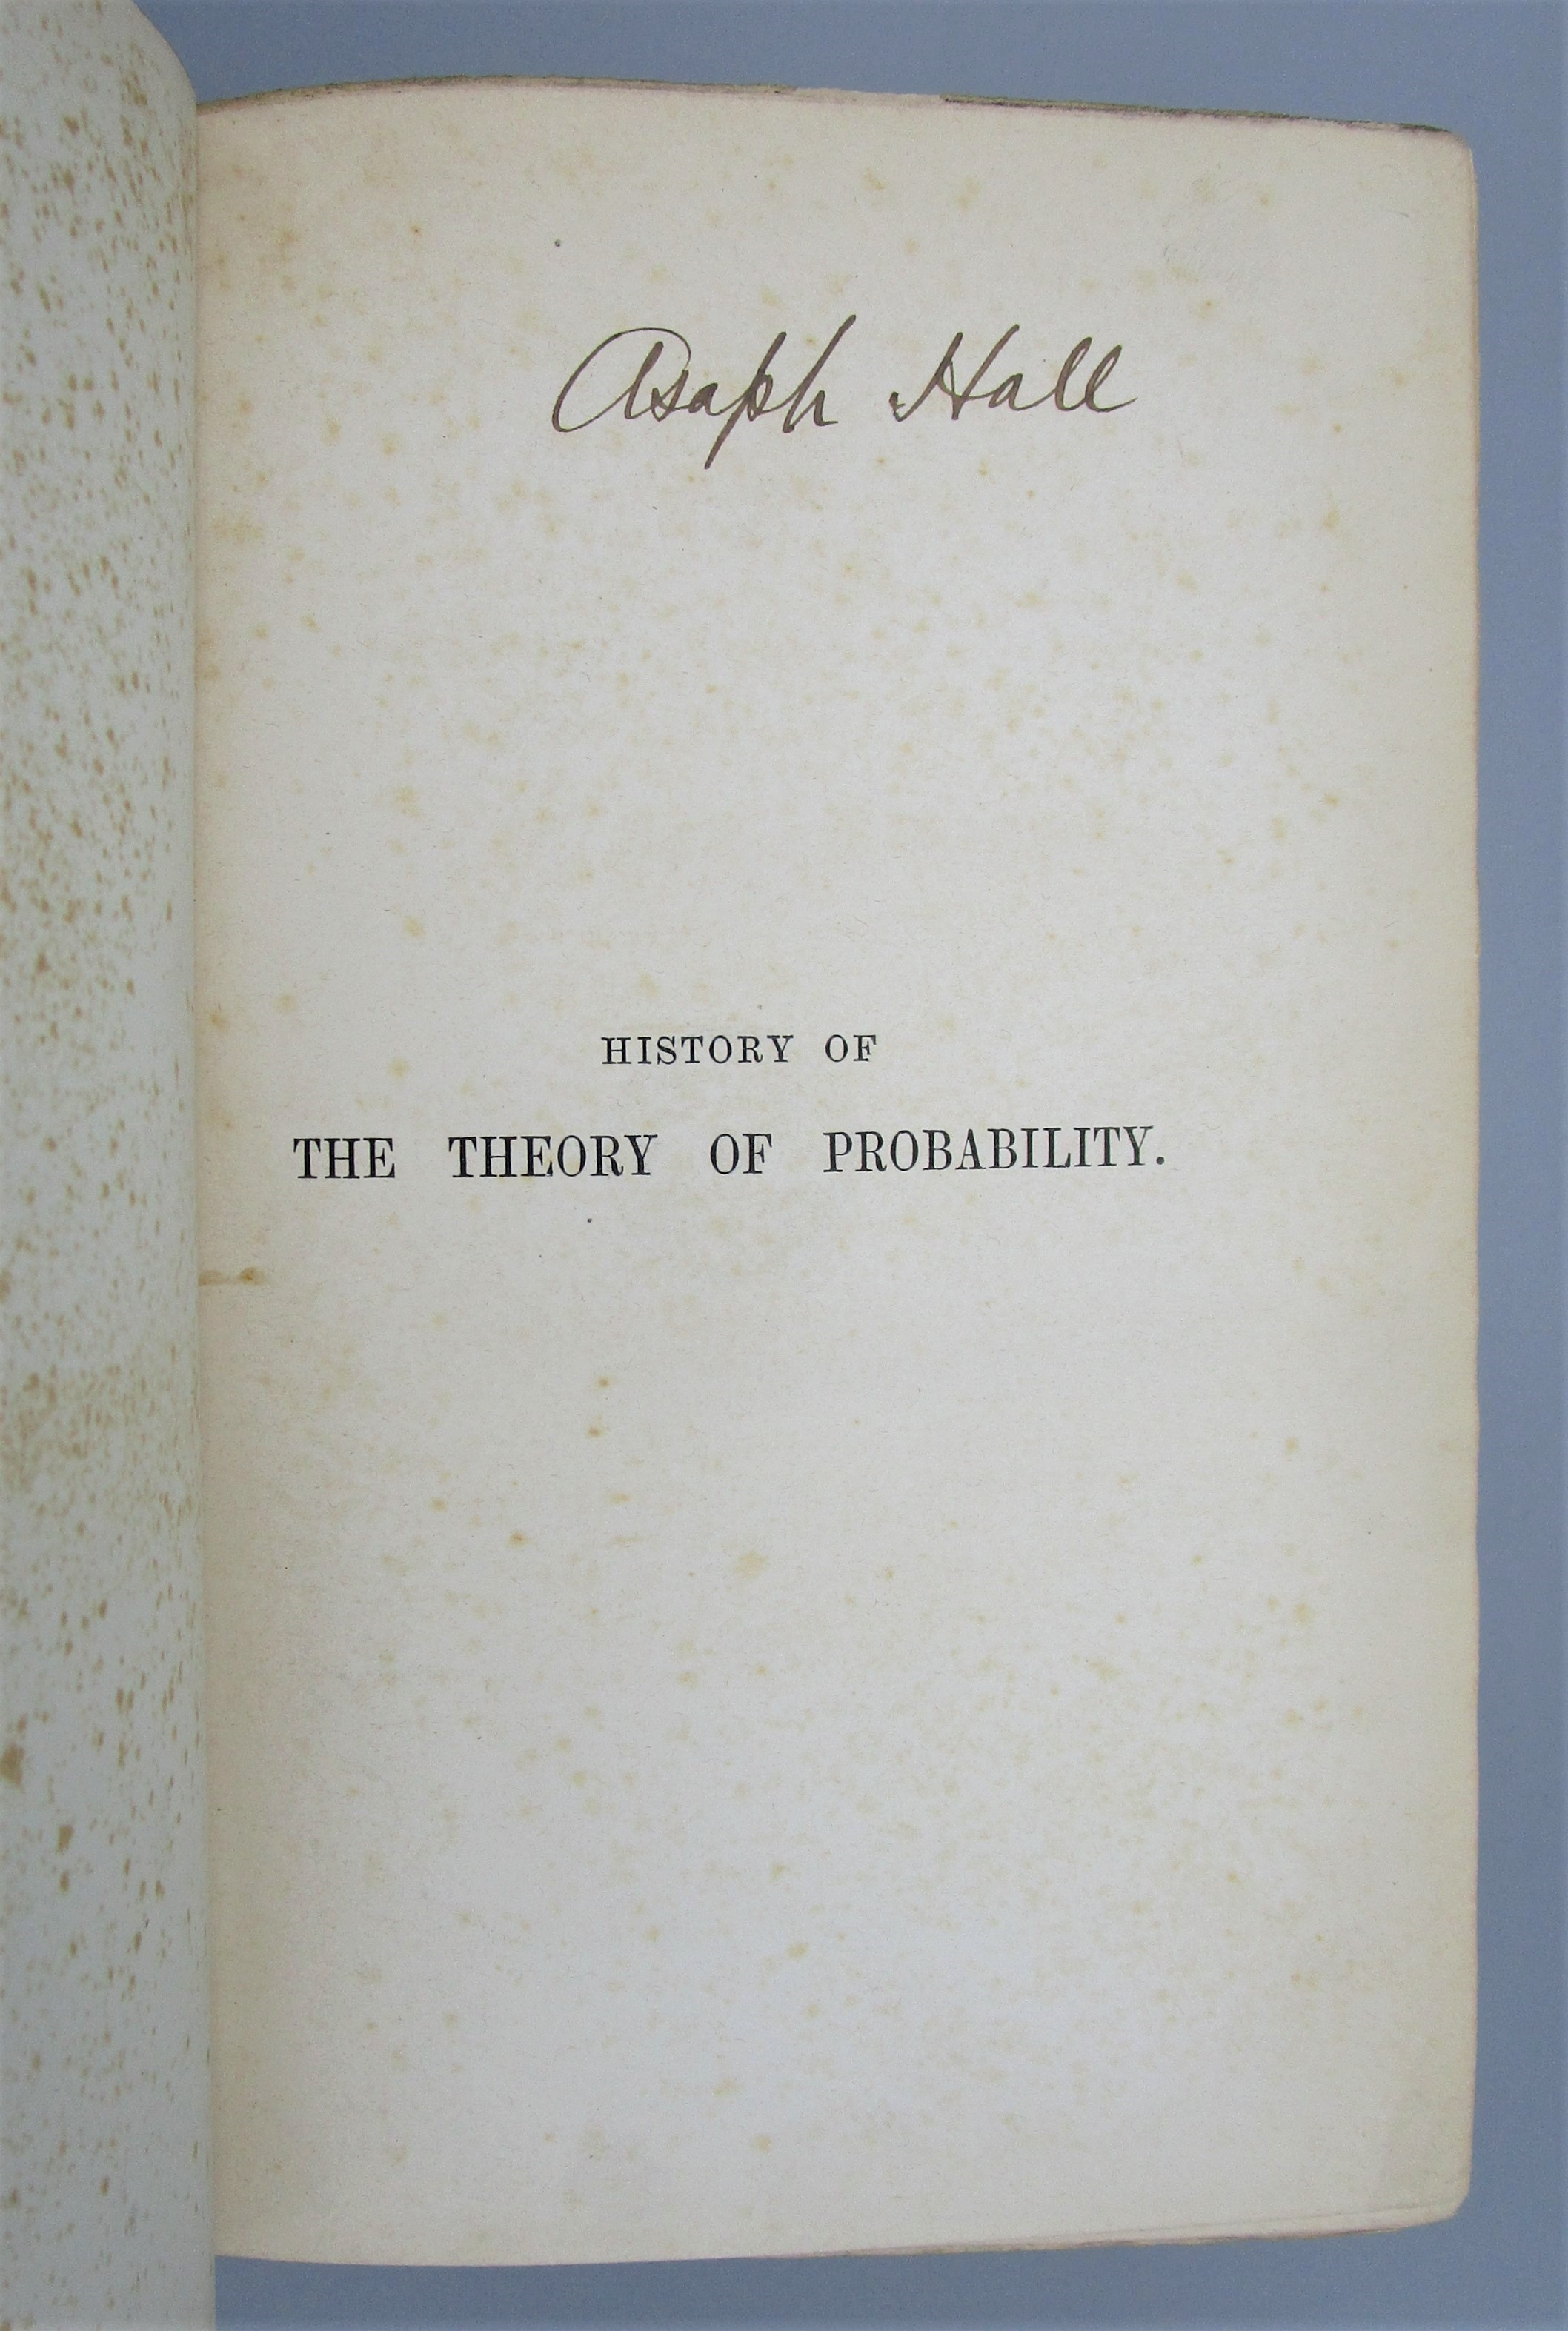 HISTORY OF THE MATHEMATICAL THEORY OF PROBABILITY, by Isaac Todhunter - 1865 [1st Ed] *provenance*